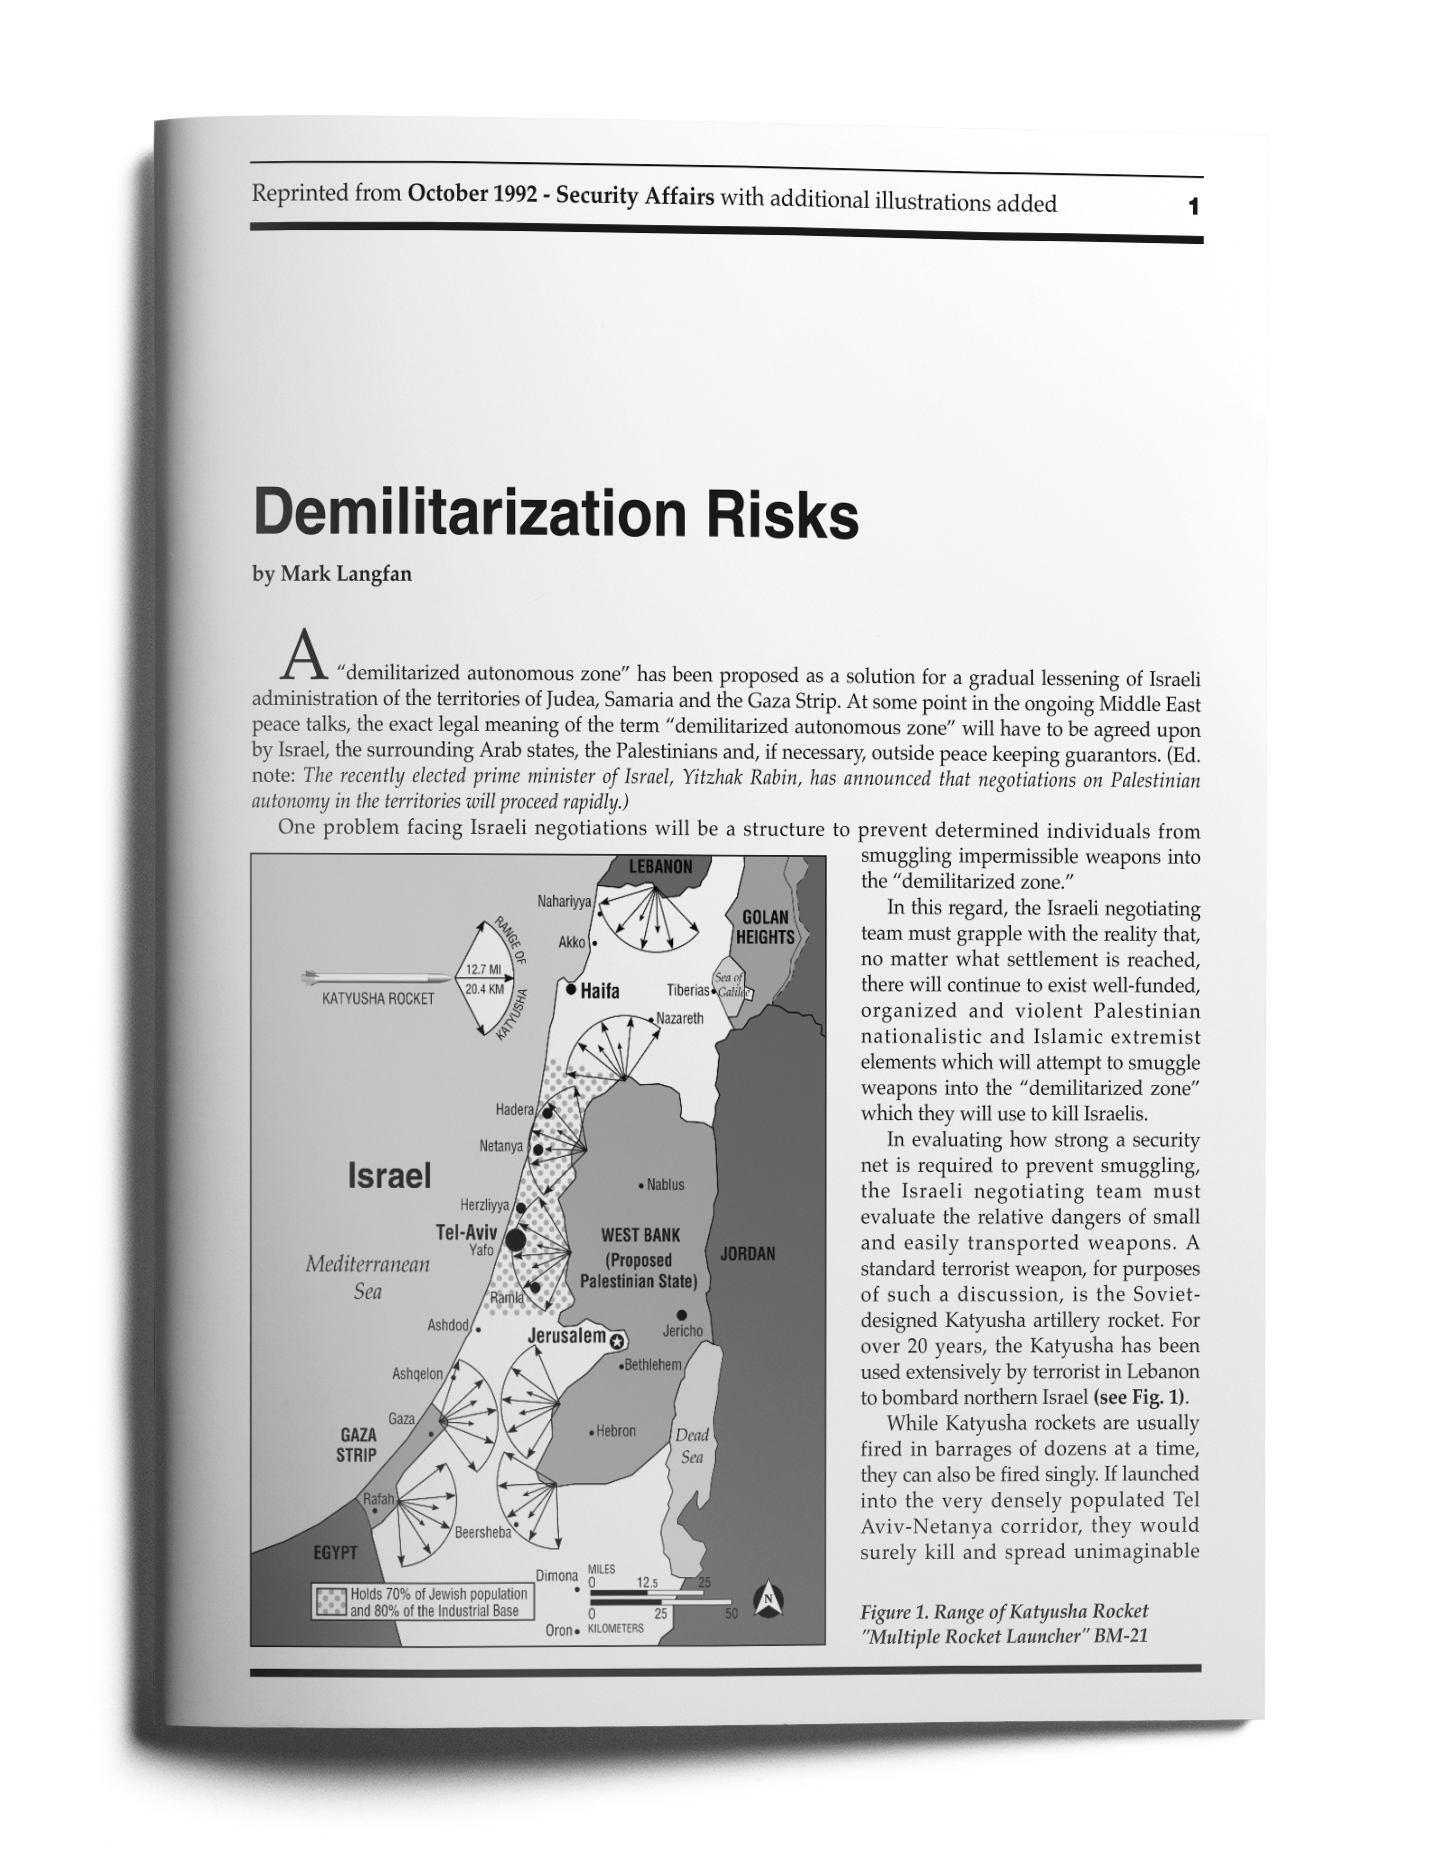 demilitarization risks